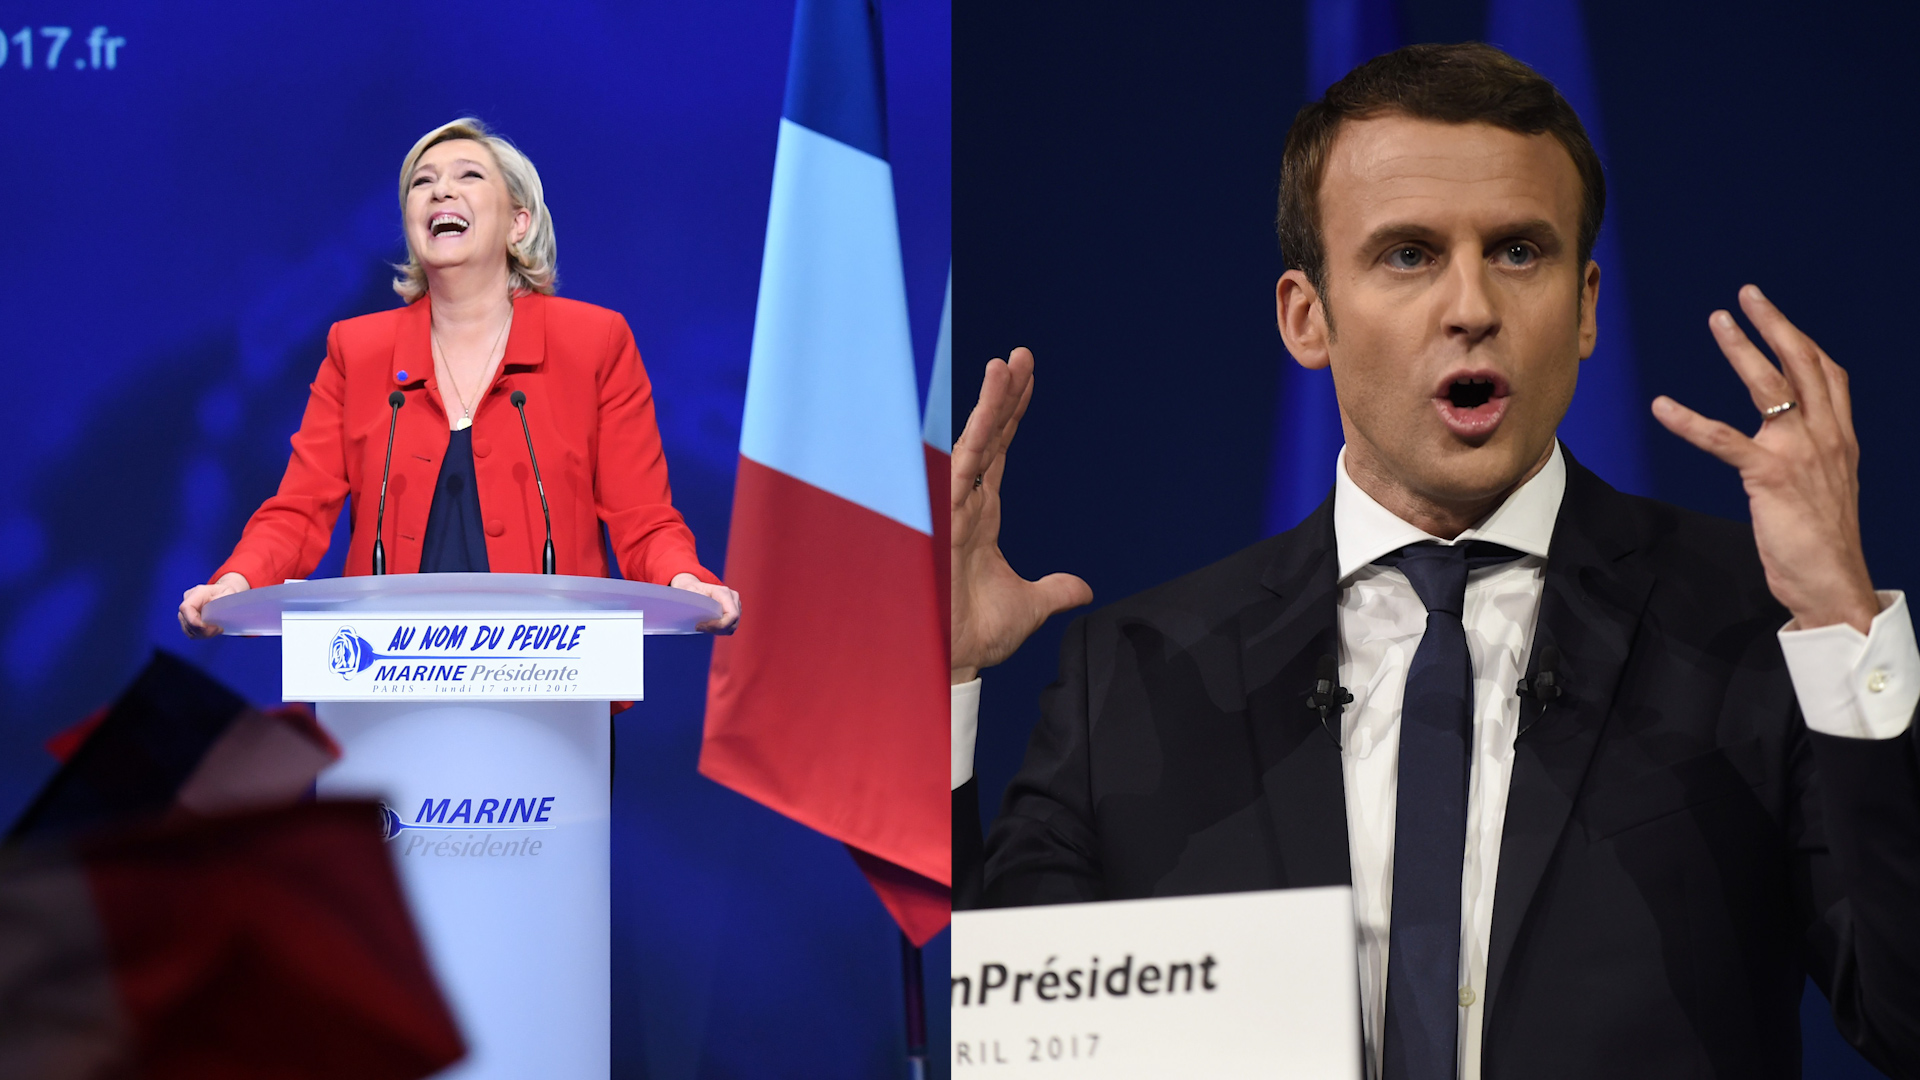 Macron's strong finish in the French election shows populist wave may be ebbing